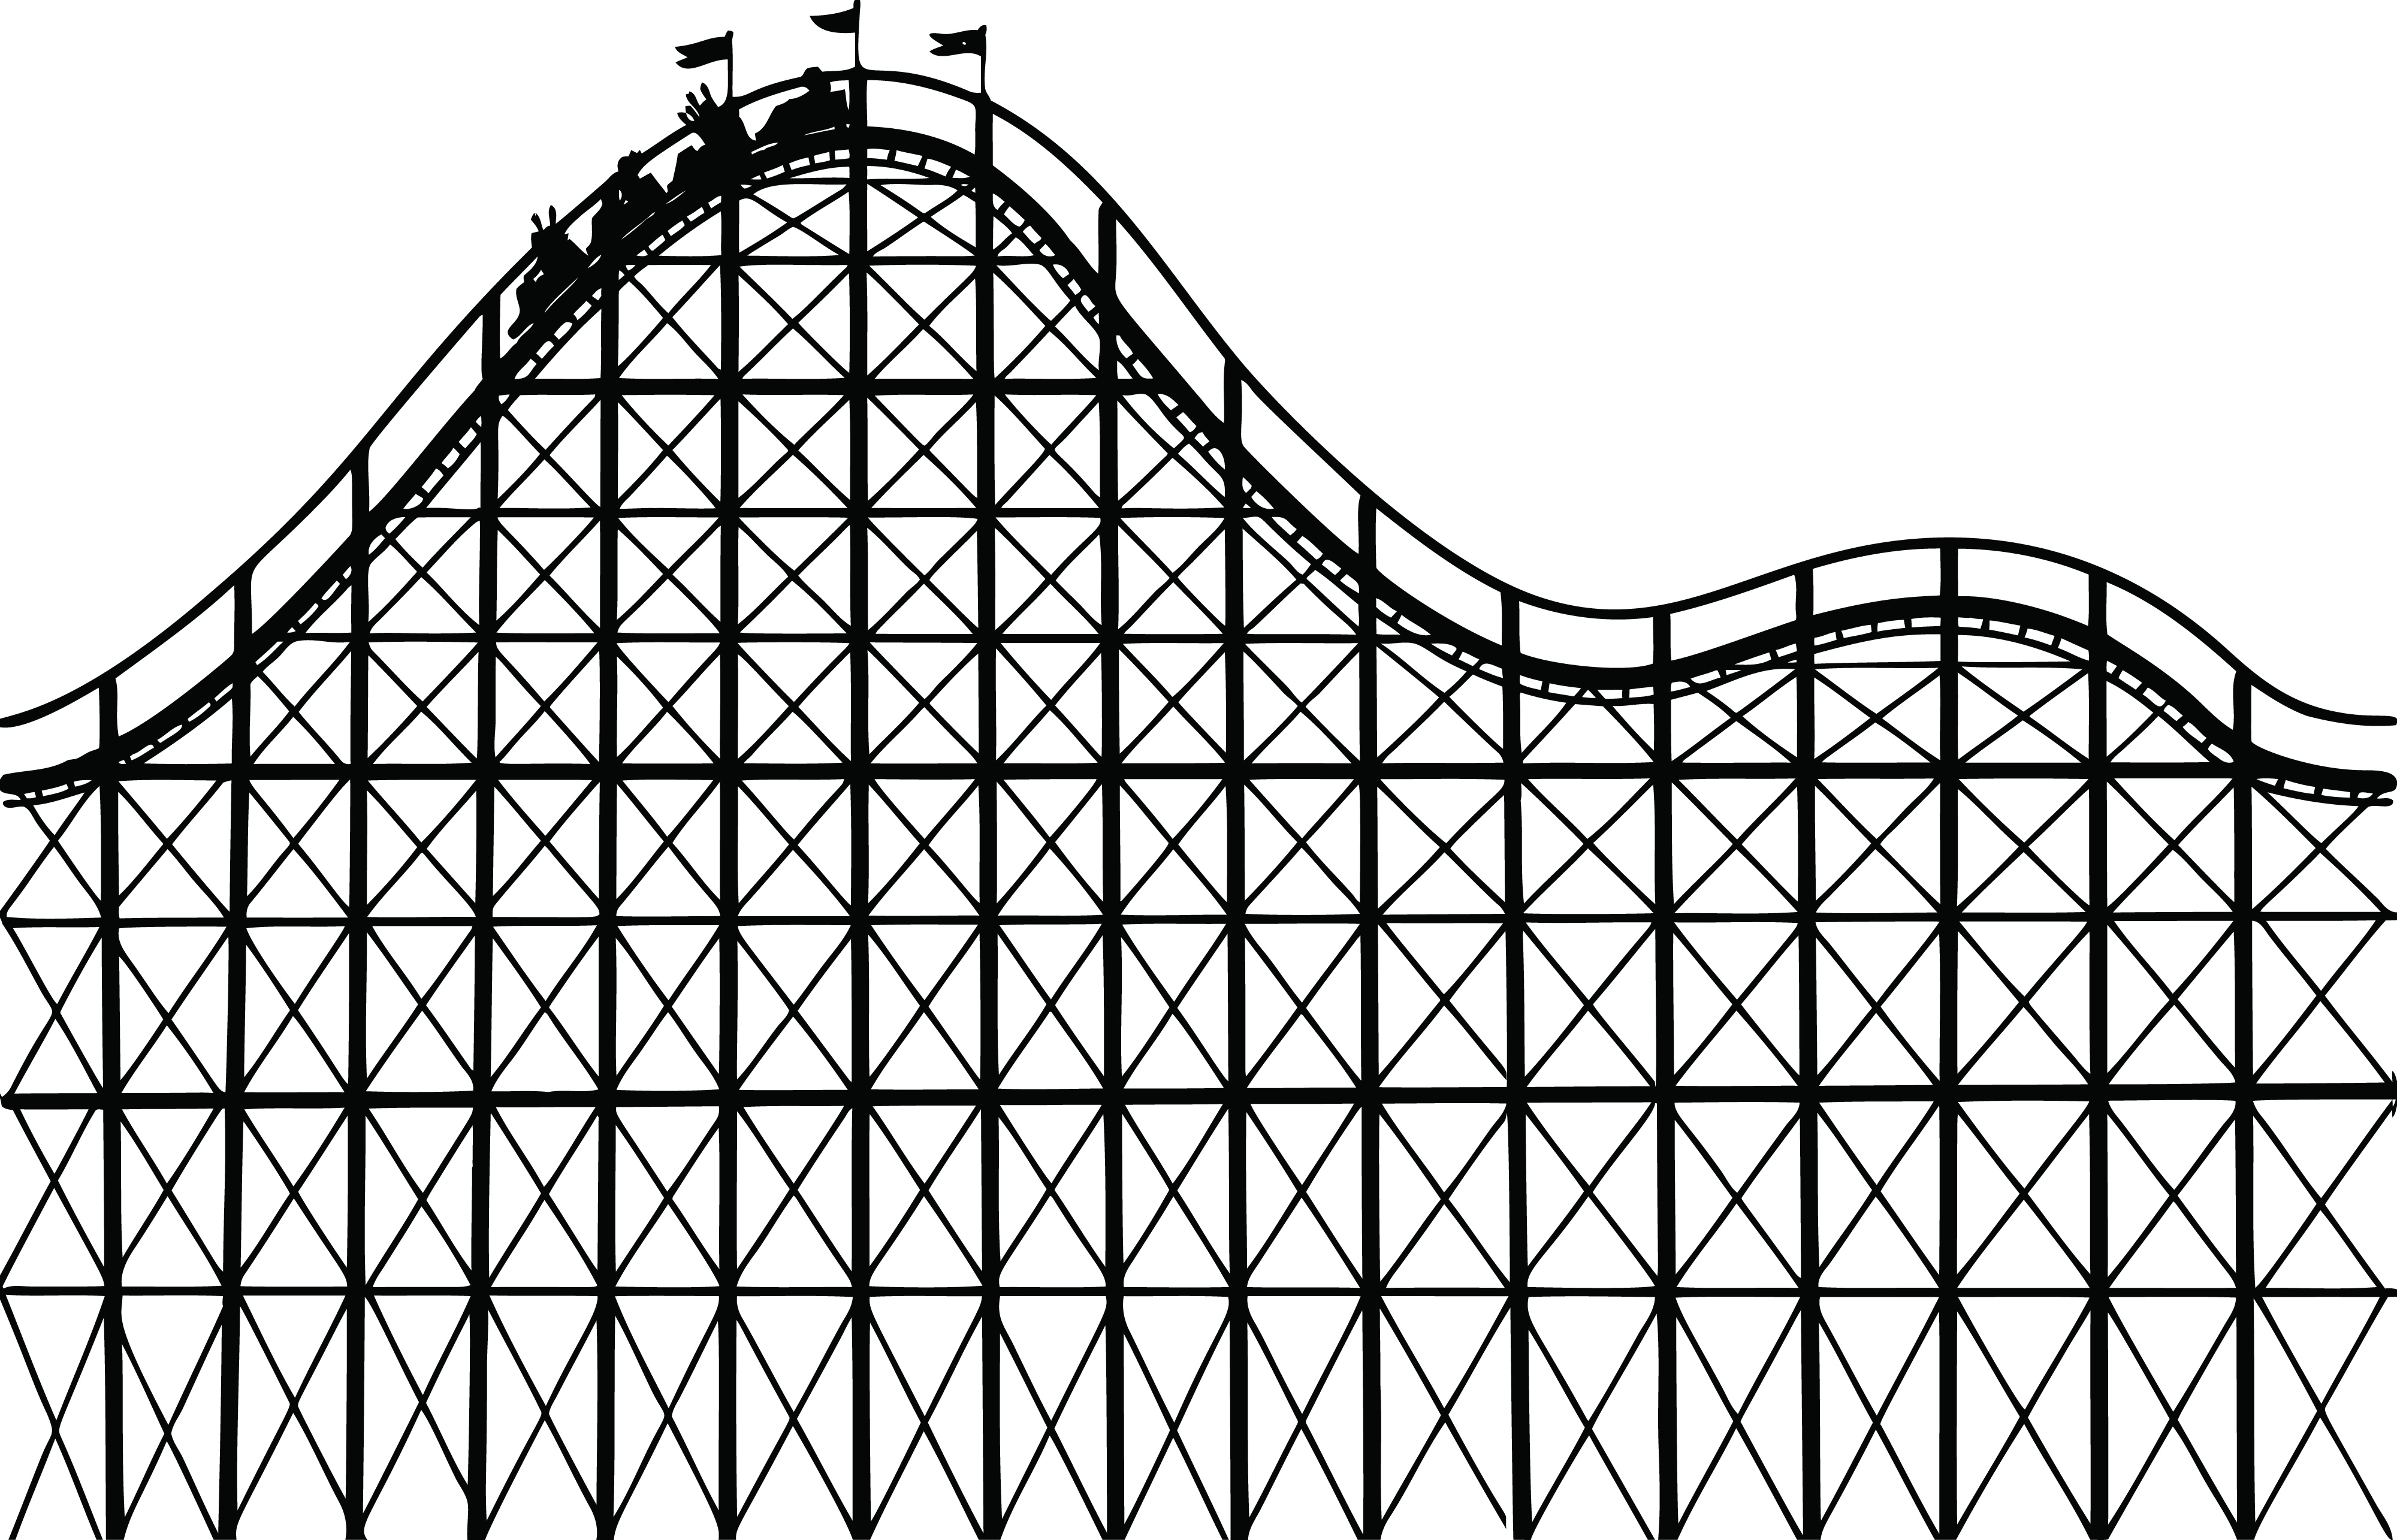 852 Roller Coaster free clipart.